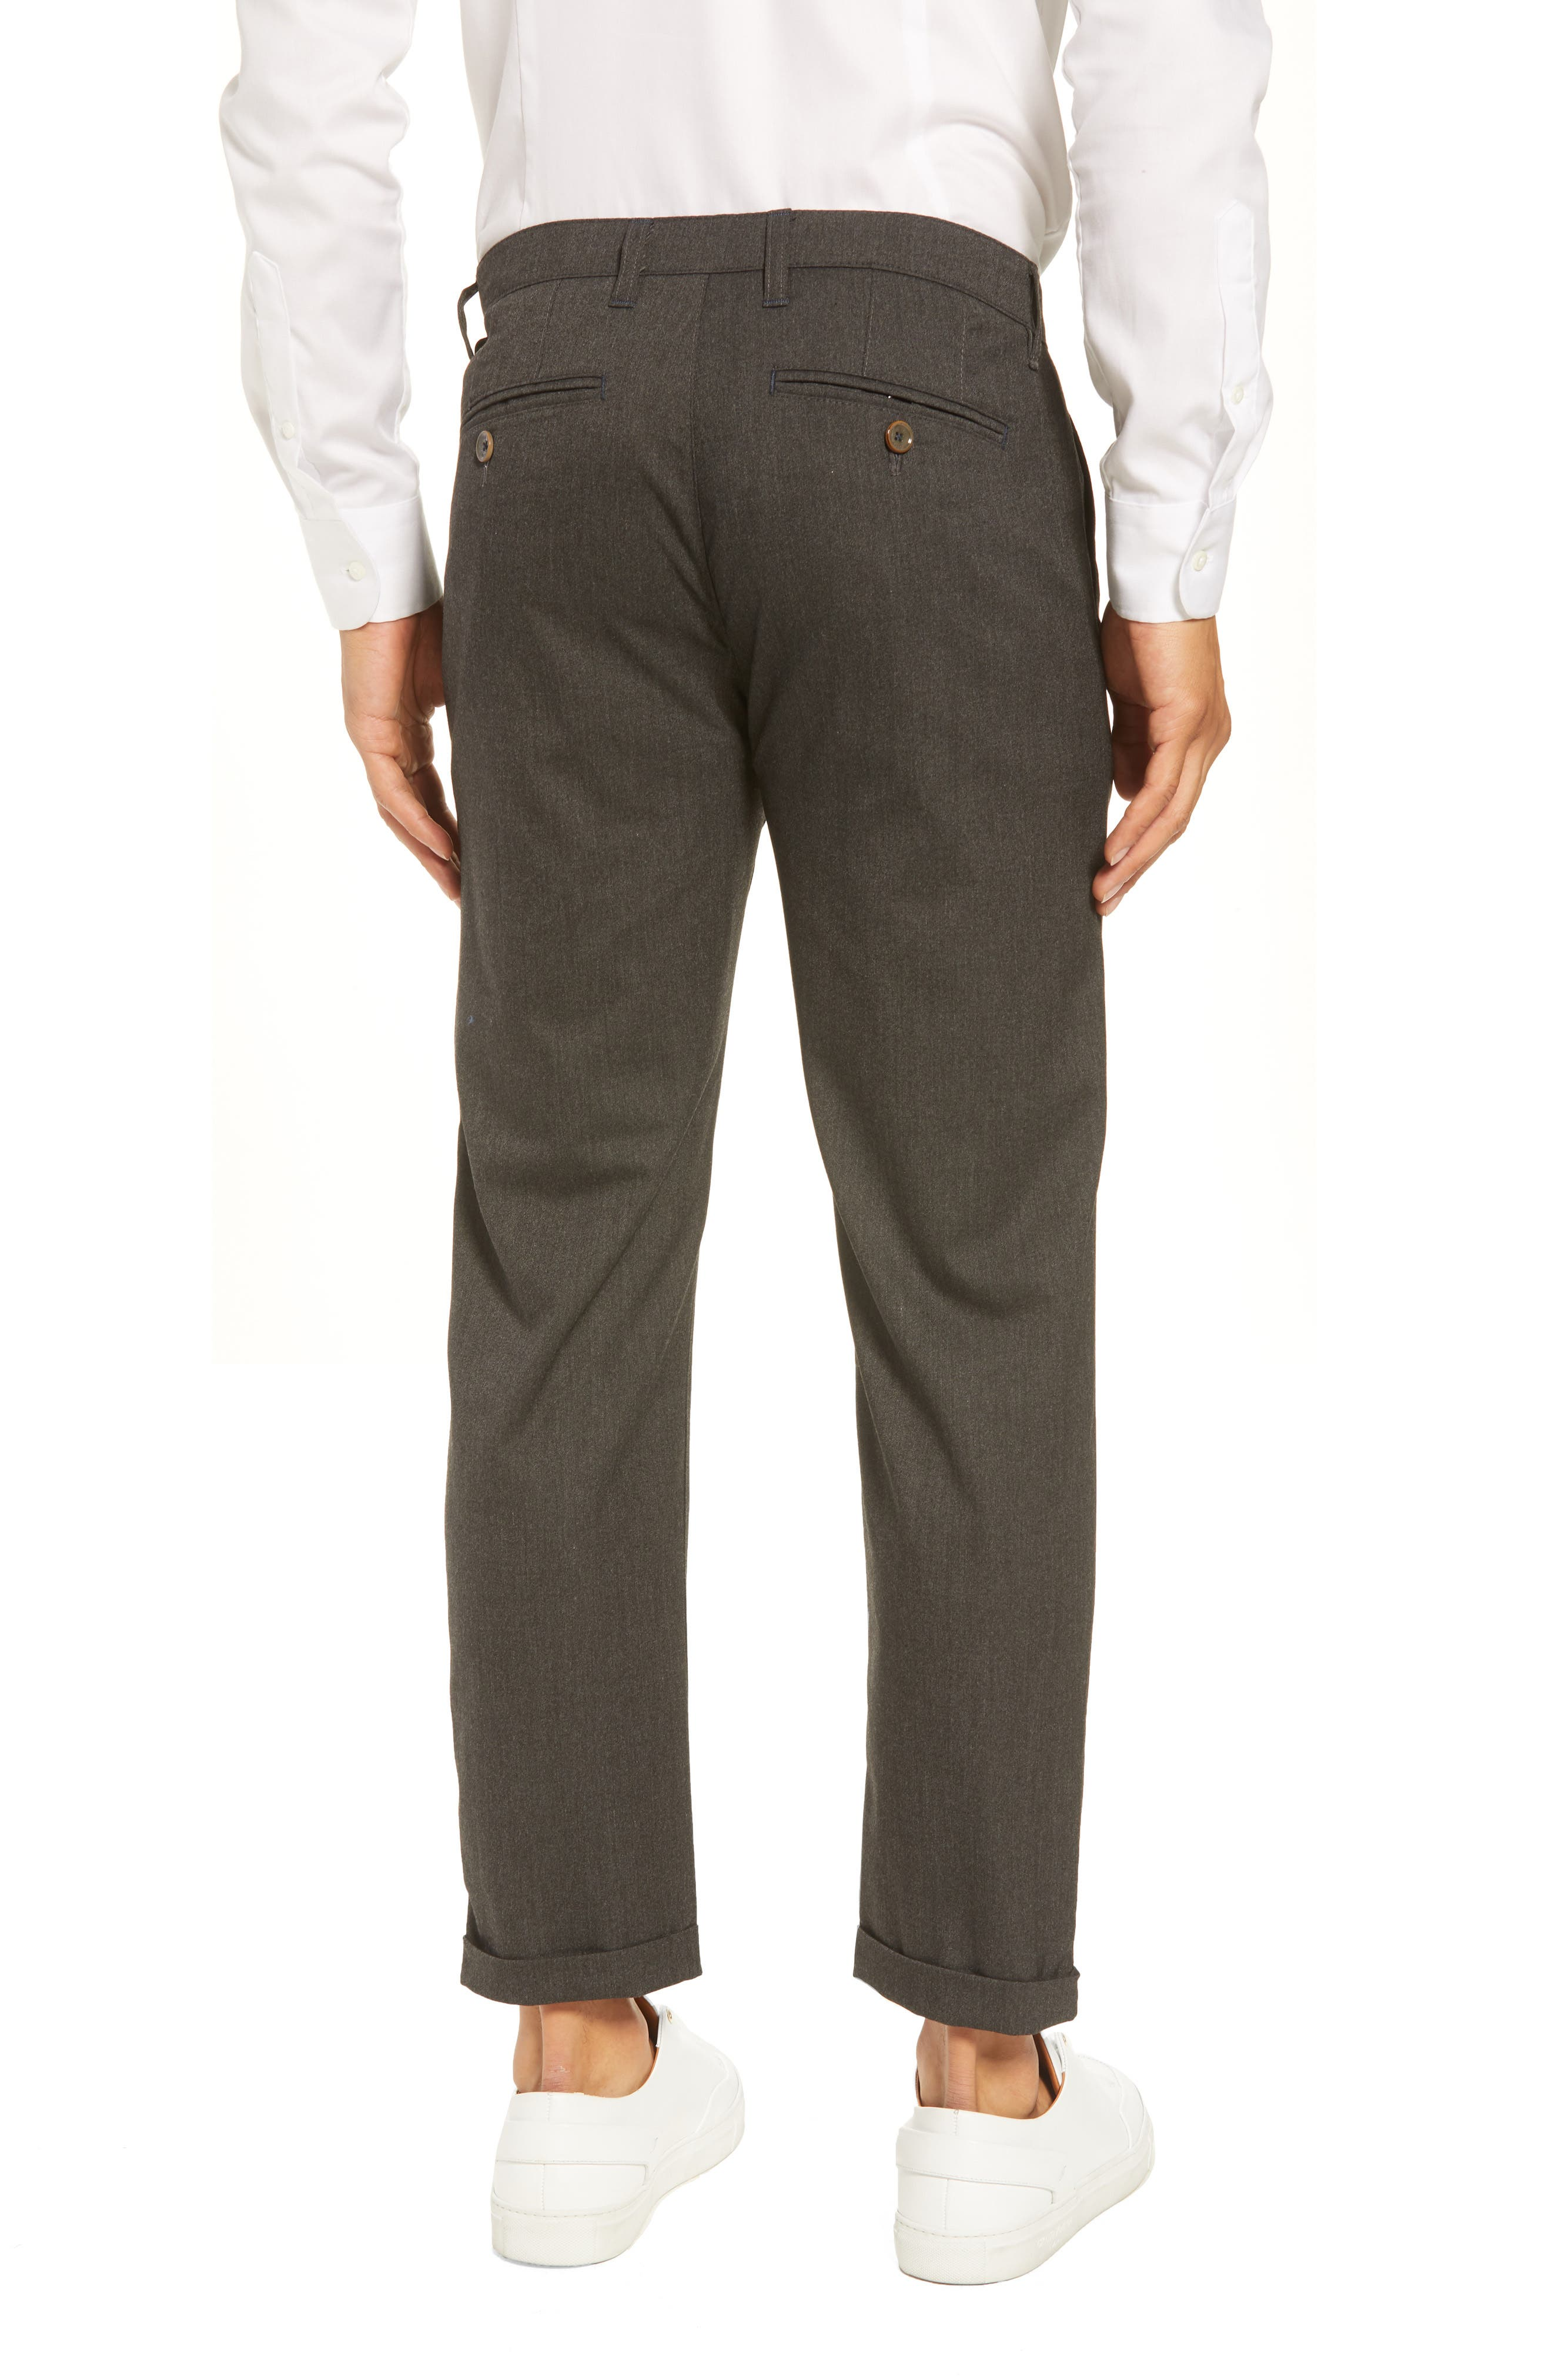 TED BAKER LONDON,                             Champi Pleated Cropped Pants,                             Alternate thumbnail 2, color,                             001